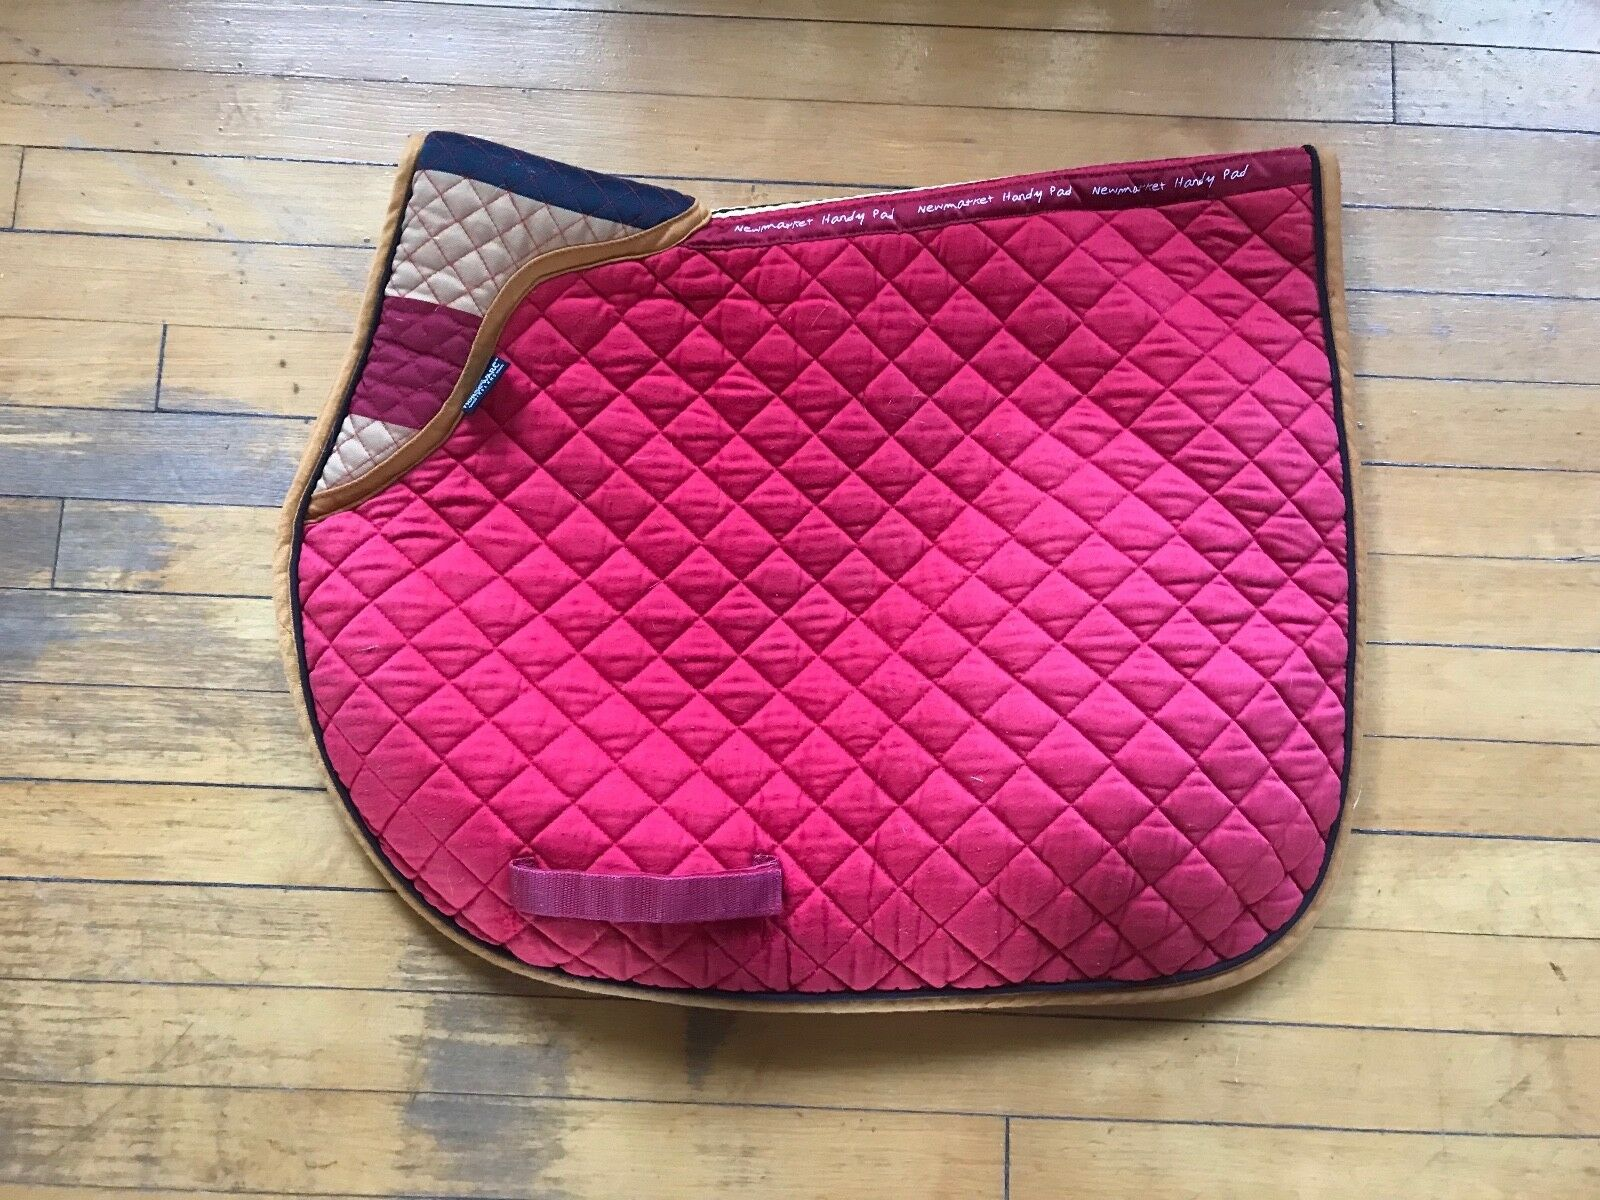 Rambo Horseware Cotton Quilted All Purpose Pad - Newmarket gold Whitney Stripe